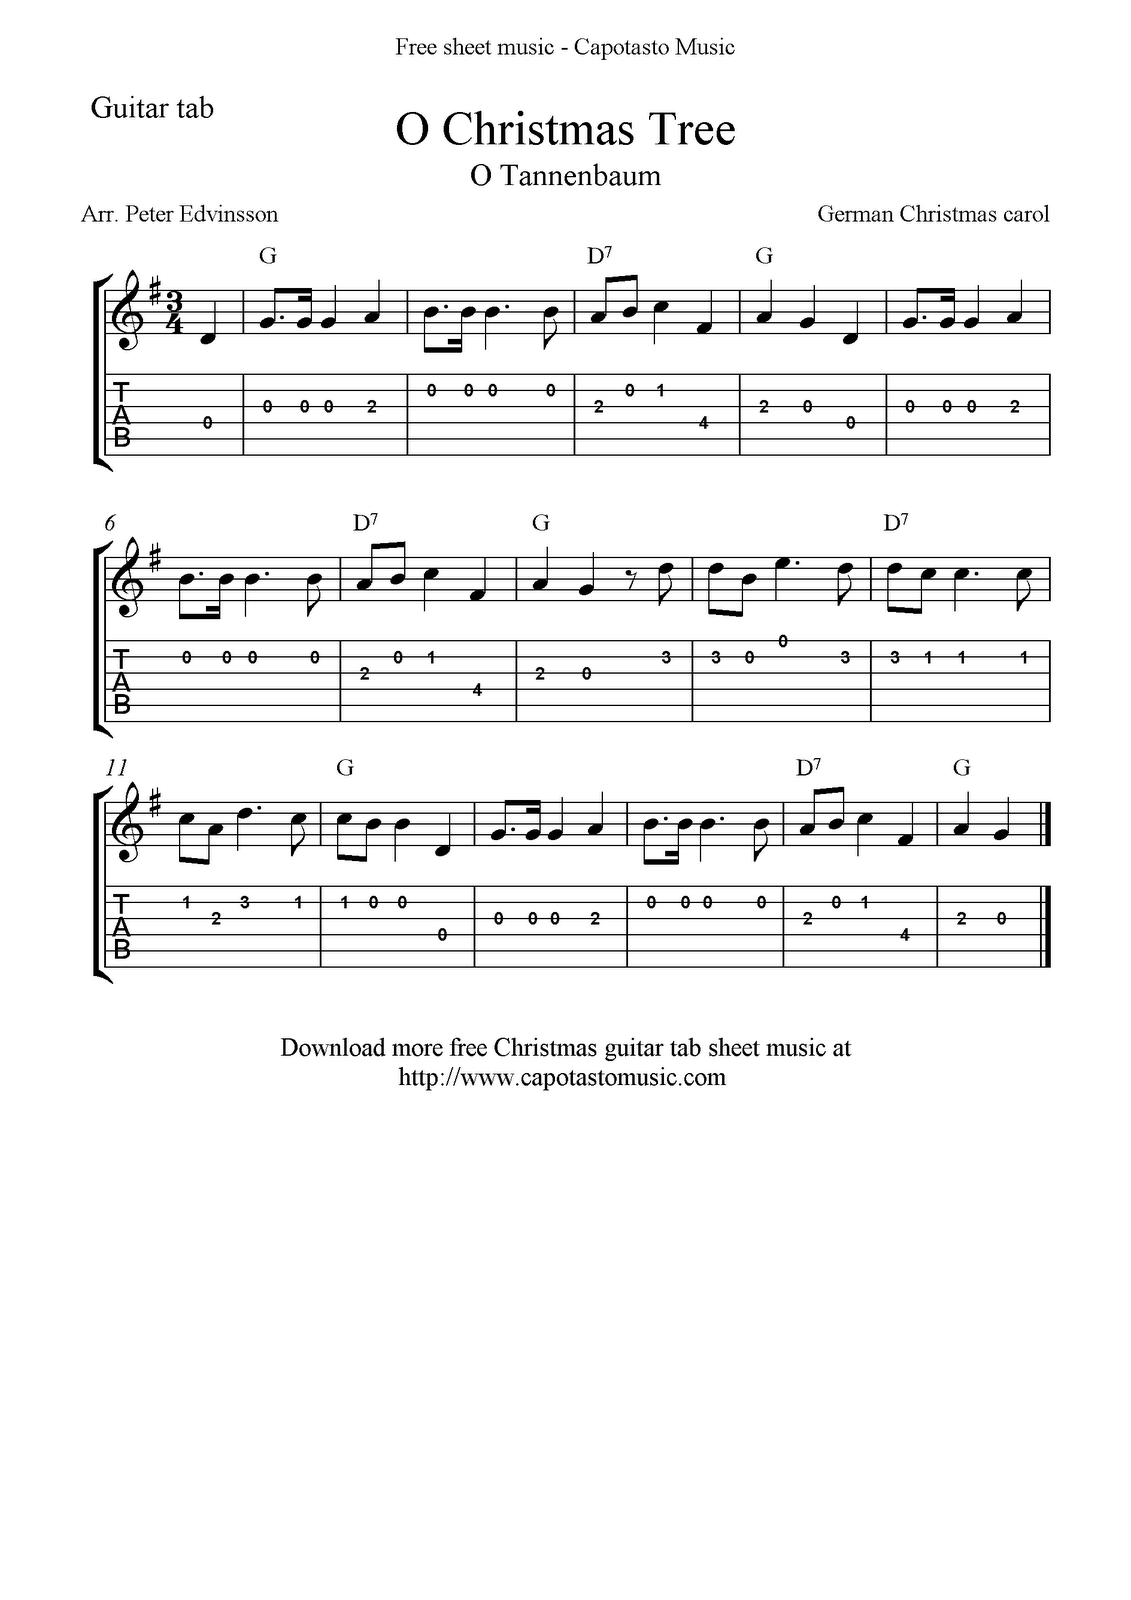 O Christmas Tree Tab Png 1131 1600 Guitar Tabs Songs Guitar Kids Acoustic Guitar Lessons